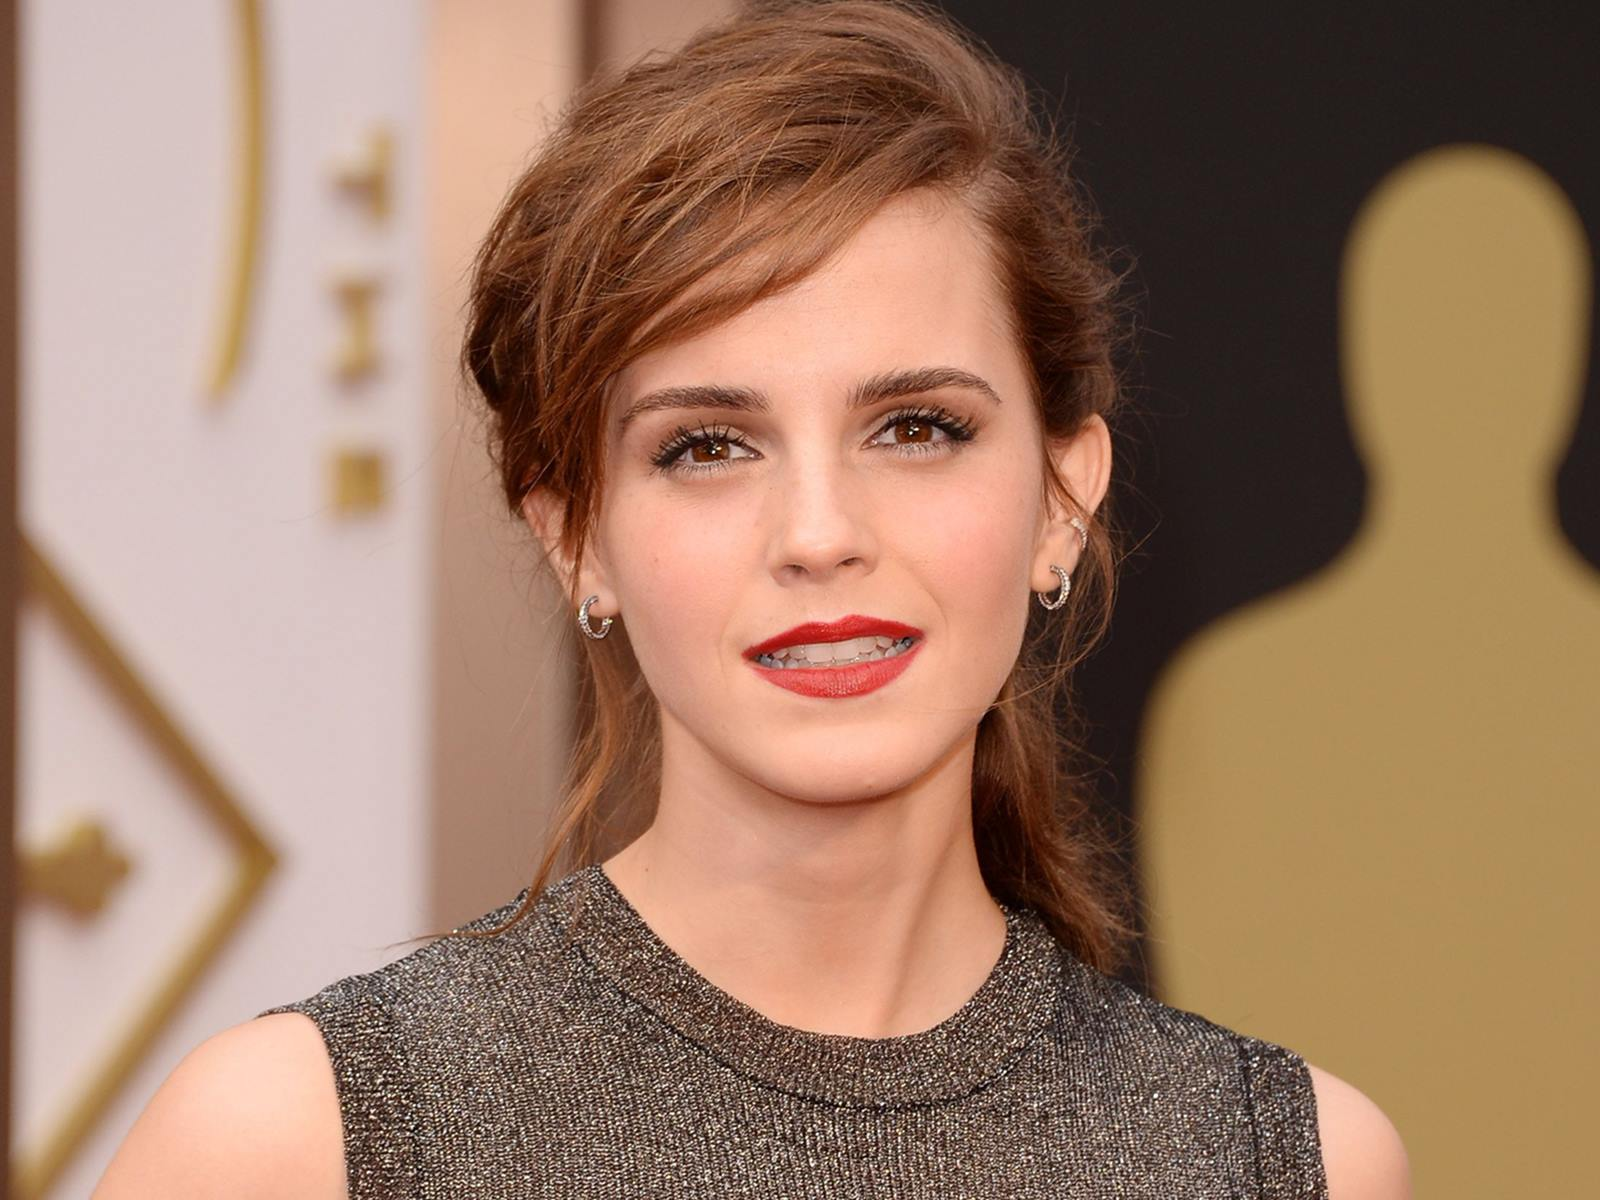 nice emma watson cute look laptop download background photo hd free